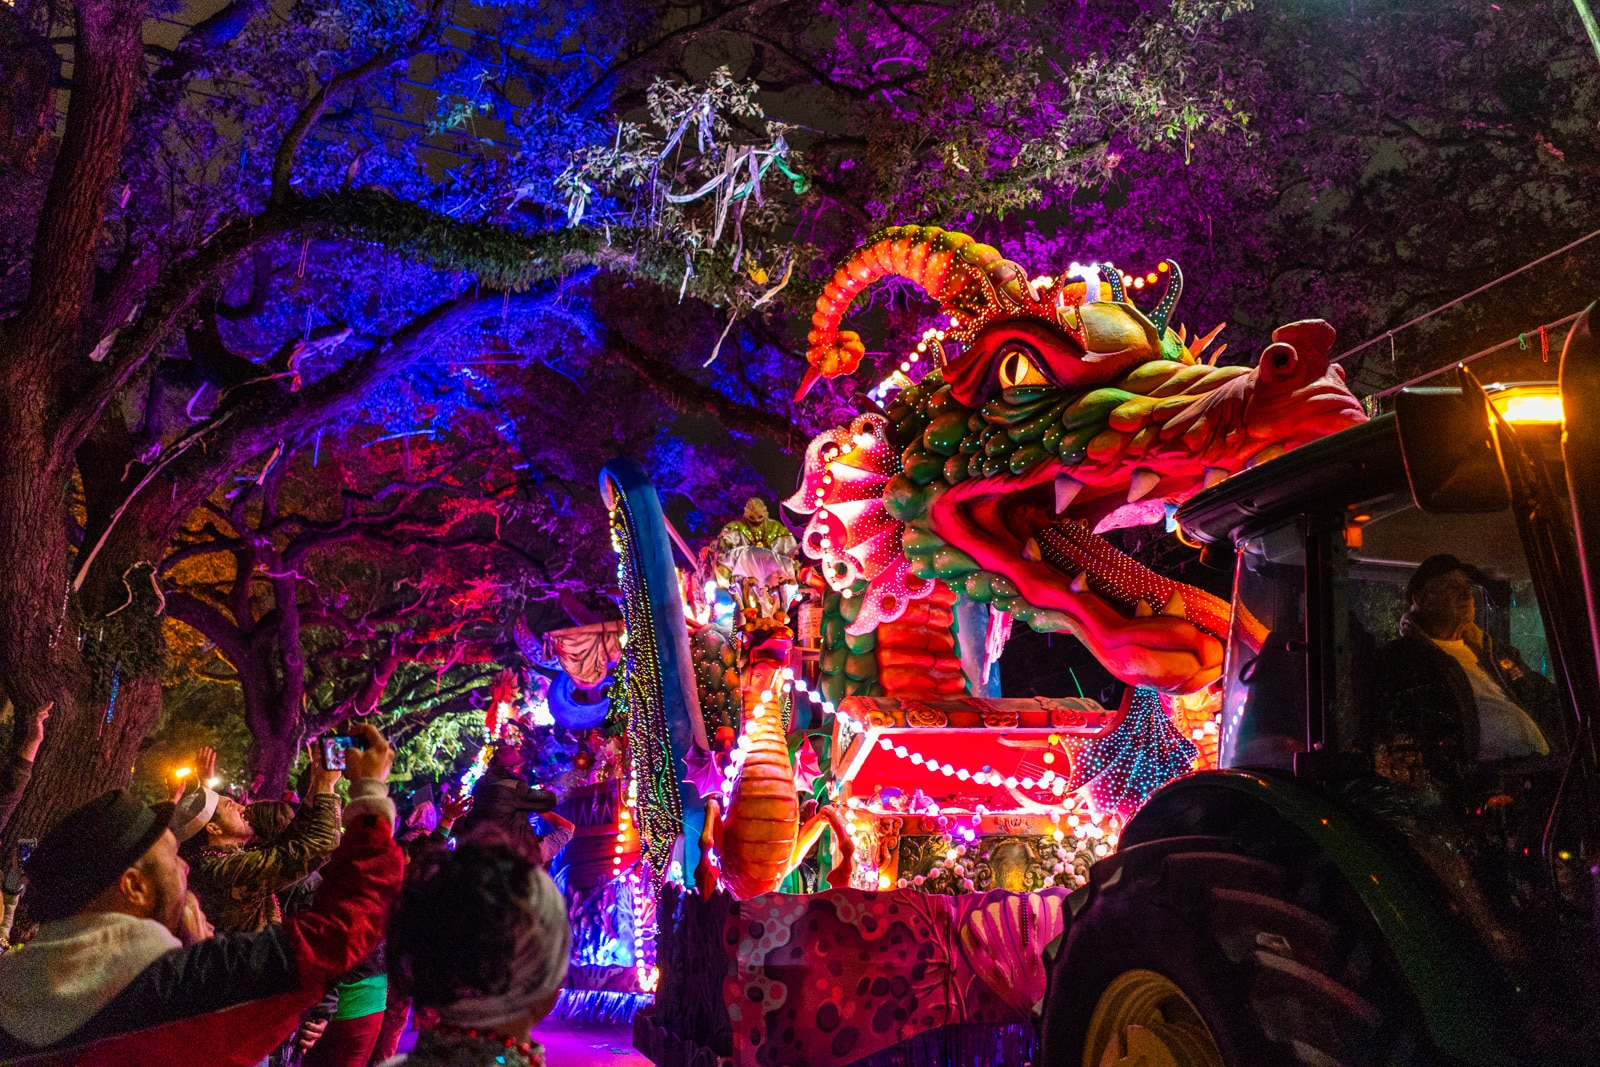 Fantastic dragon float at the Krewe of Orpheus parade during Mardi Gras in New Orleans